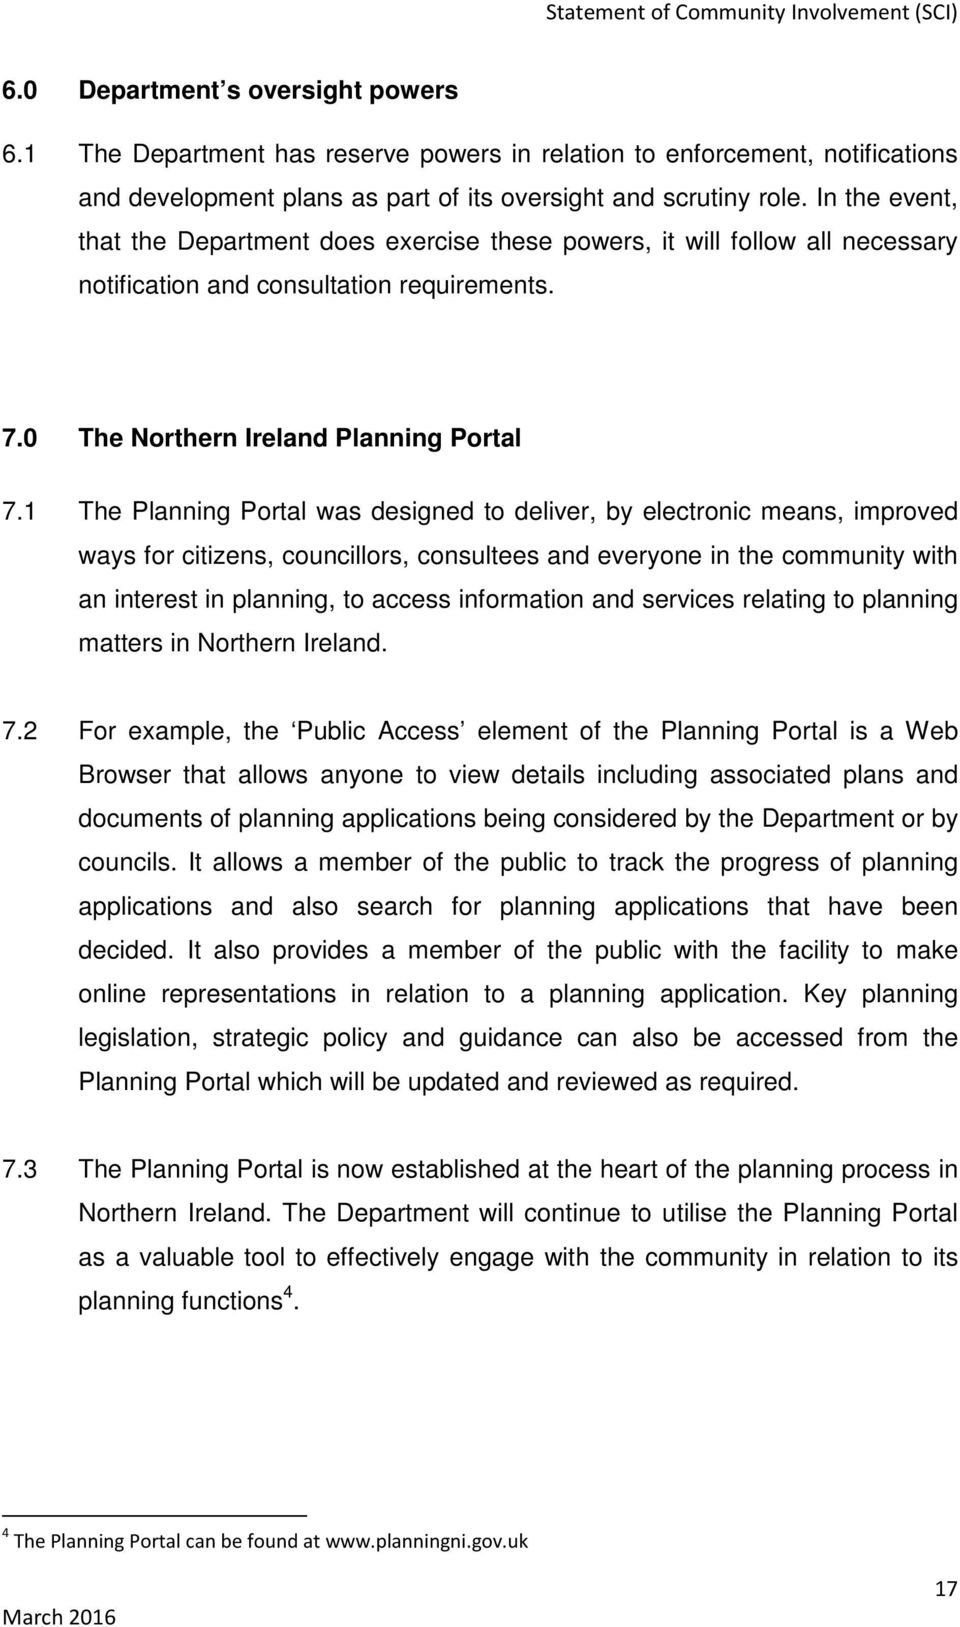 1 The Planning Portal was designed to deliver, by electronic means, improved ways for citizens, councillors, consultees and everyone in the community with an interest in planning, to access